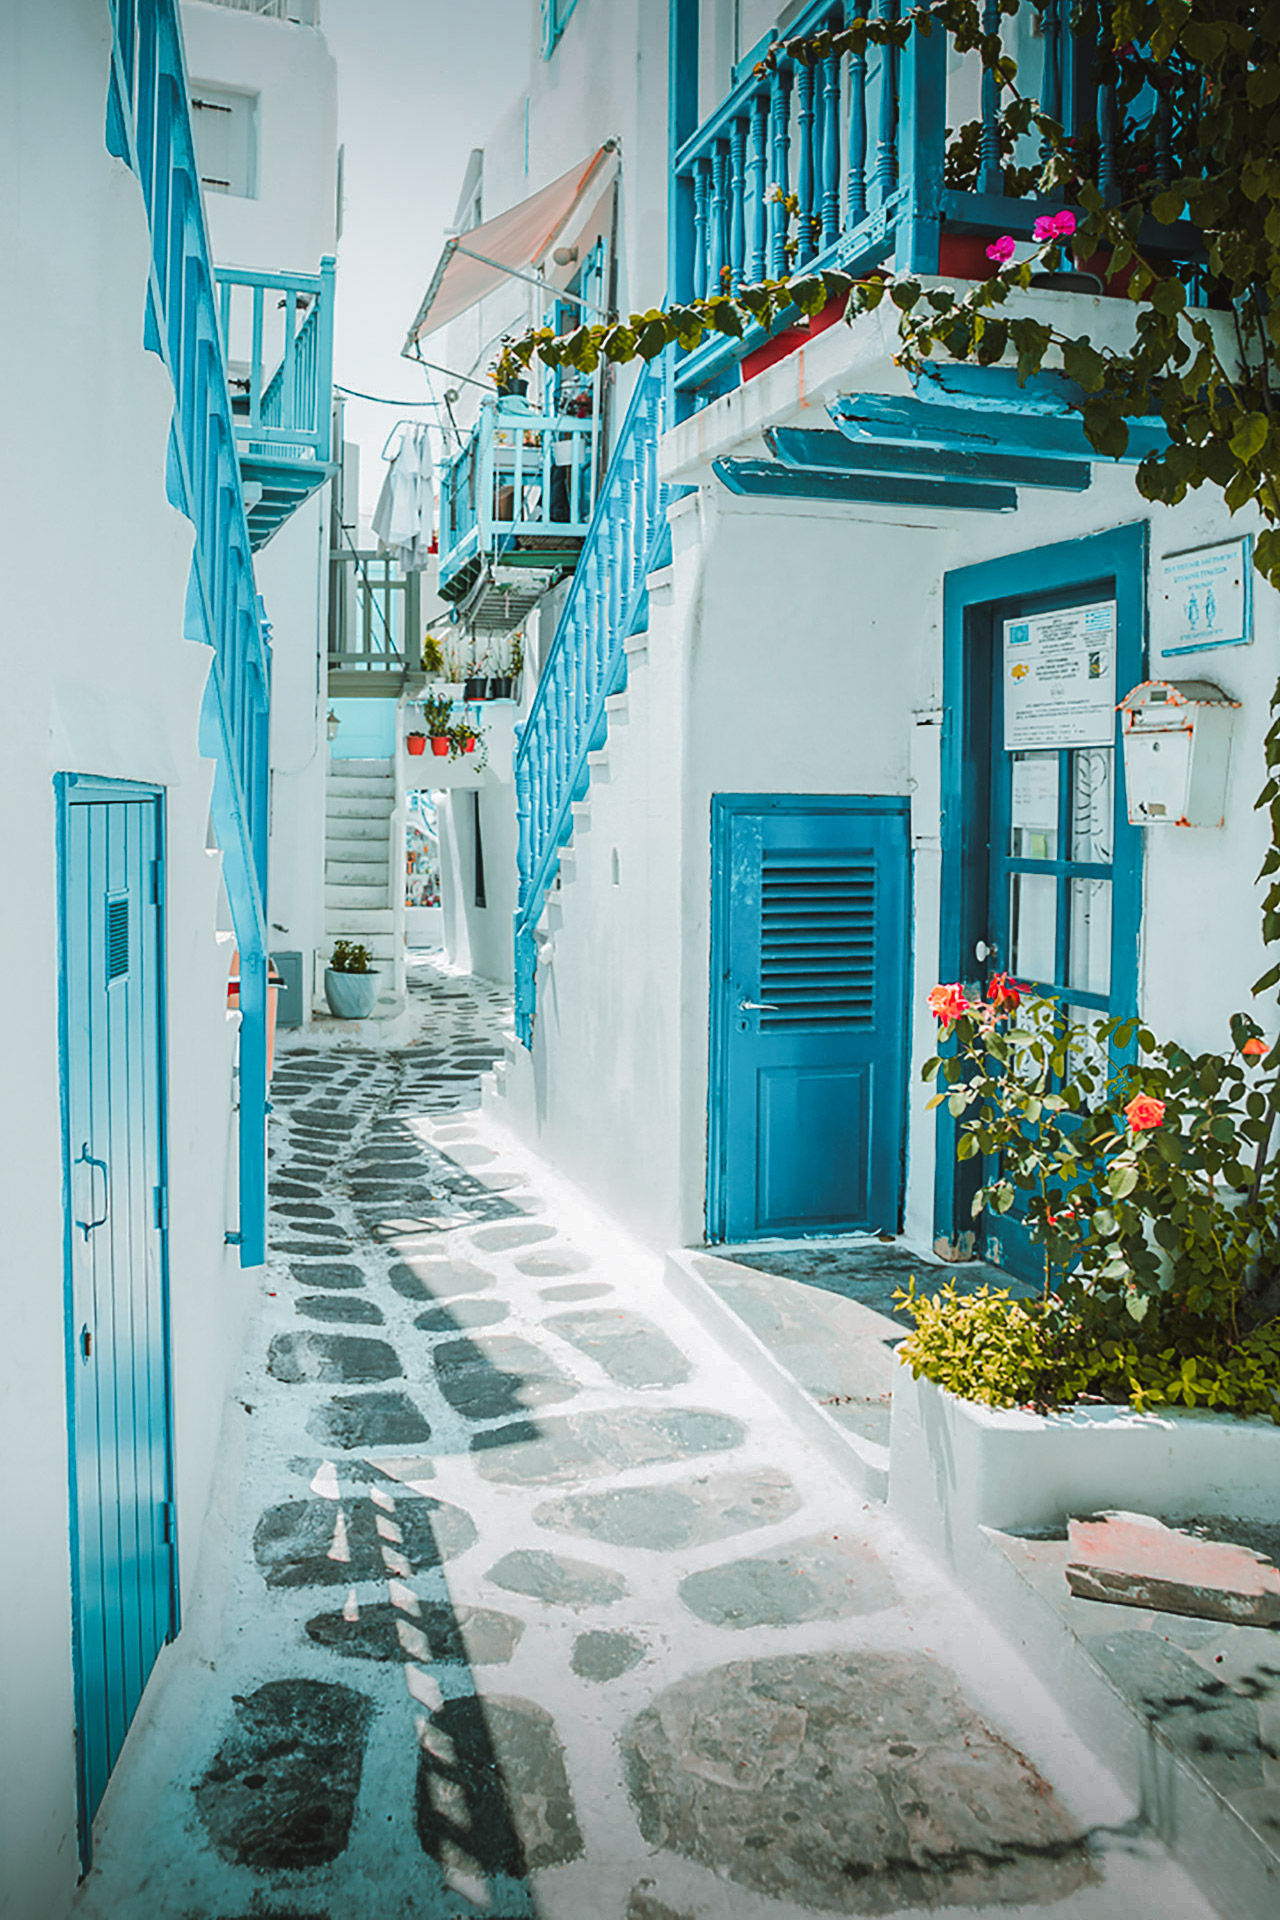 You'll know all about the Cycladic beauty of Hora from the images of cascading bougainvillea and snow-white houses with blue window frames and balconies